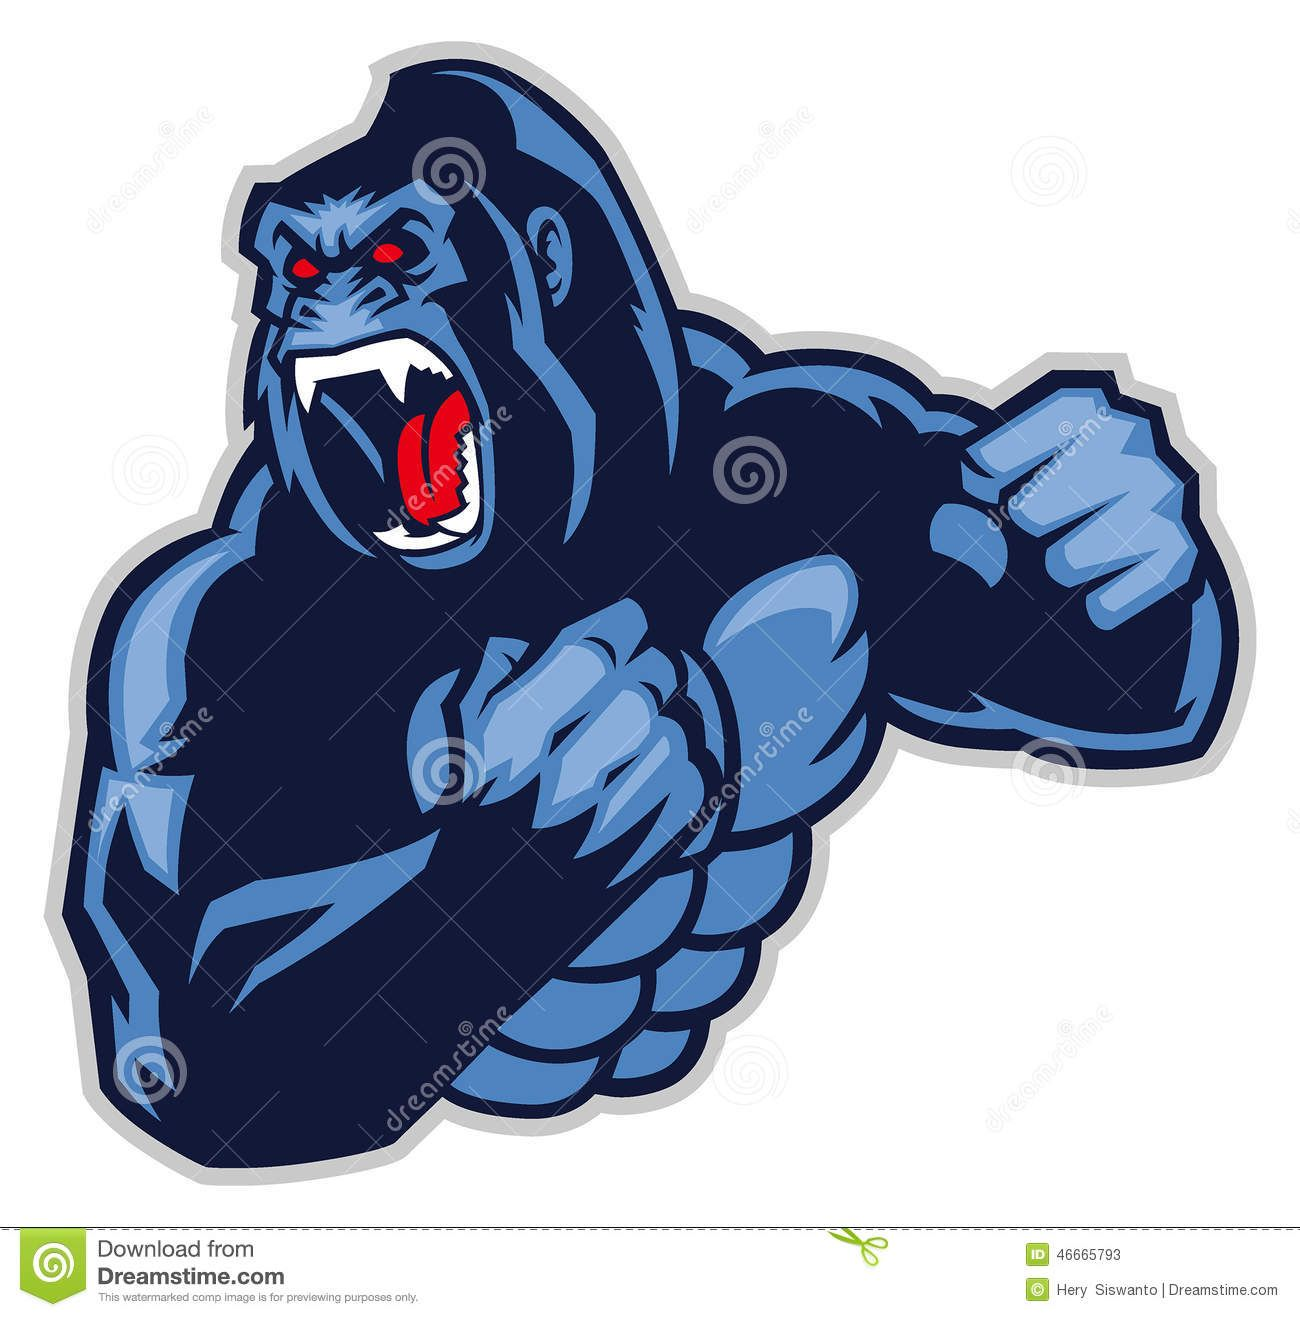 Angry Big Gorilla Download From Over 56 Million High Quality